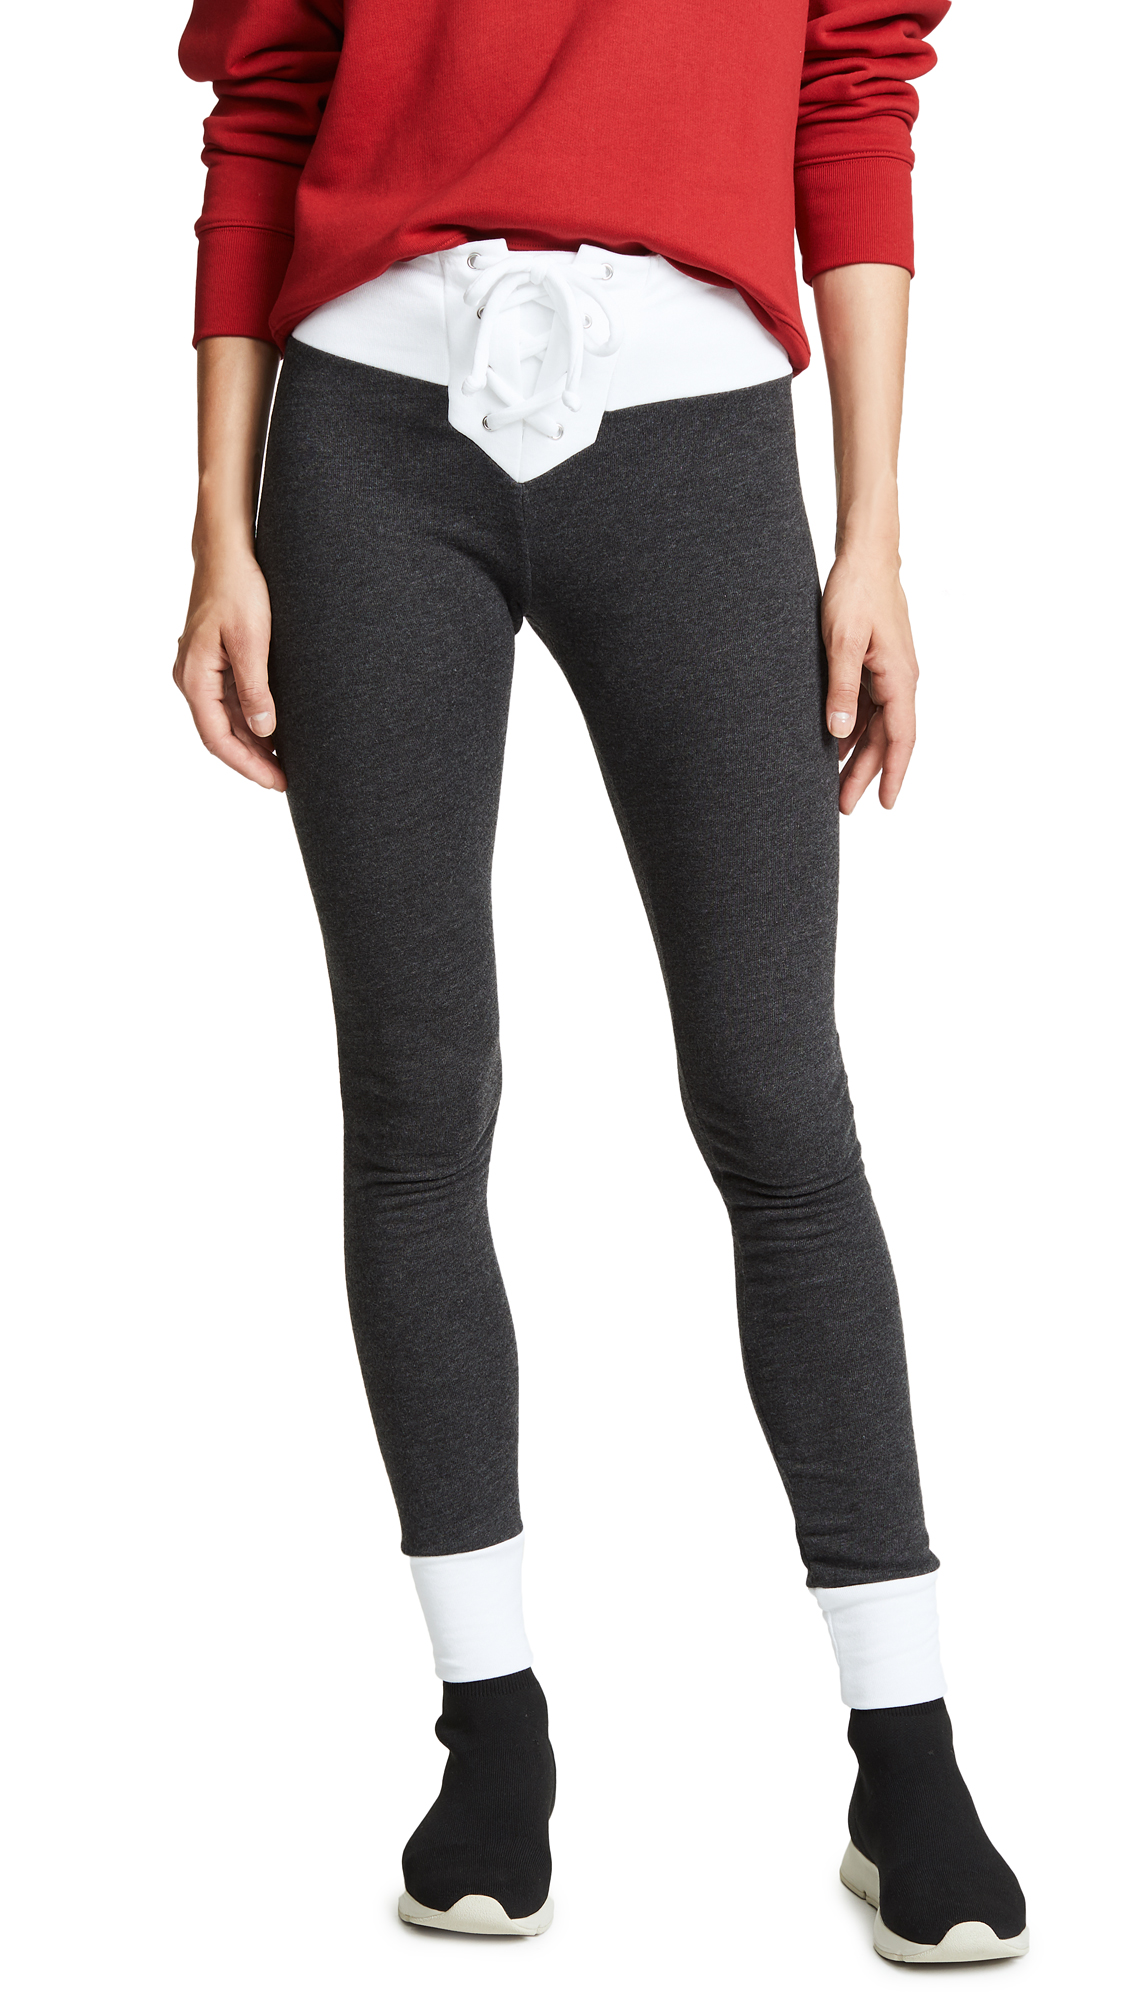 Wildfox Contrast Fifi Skinny Sweats In Clean Black/Clean White